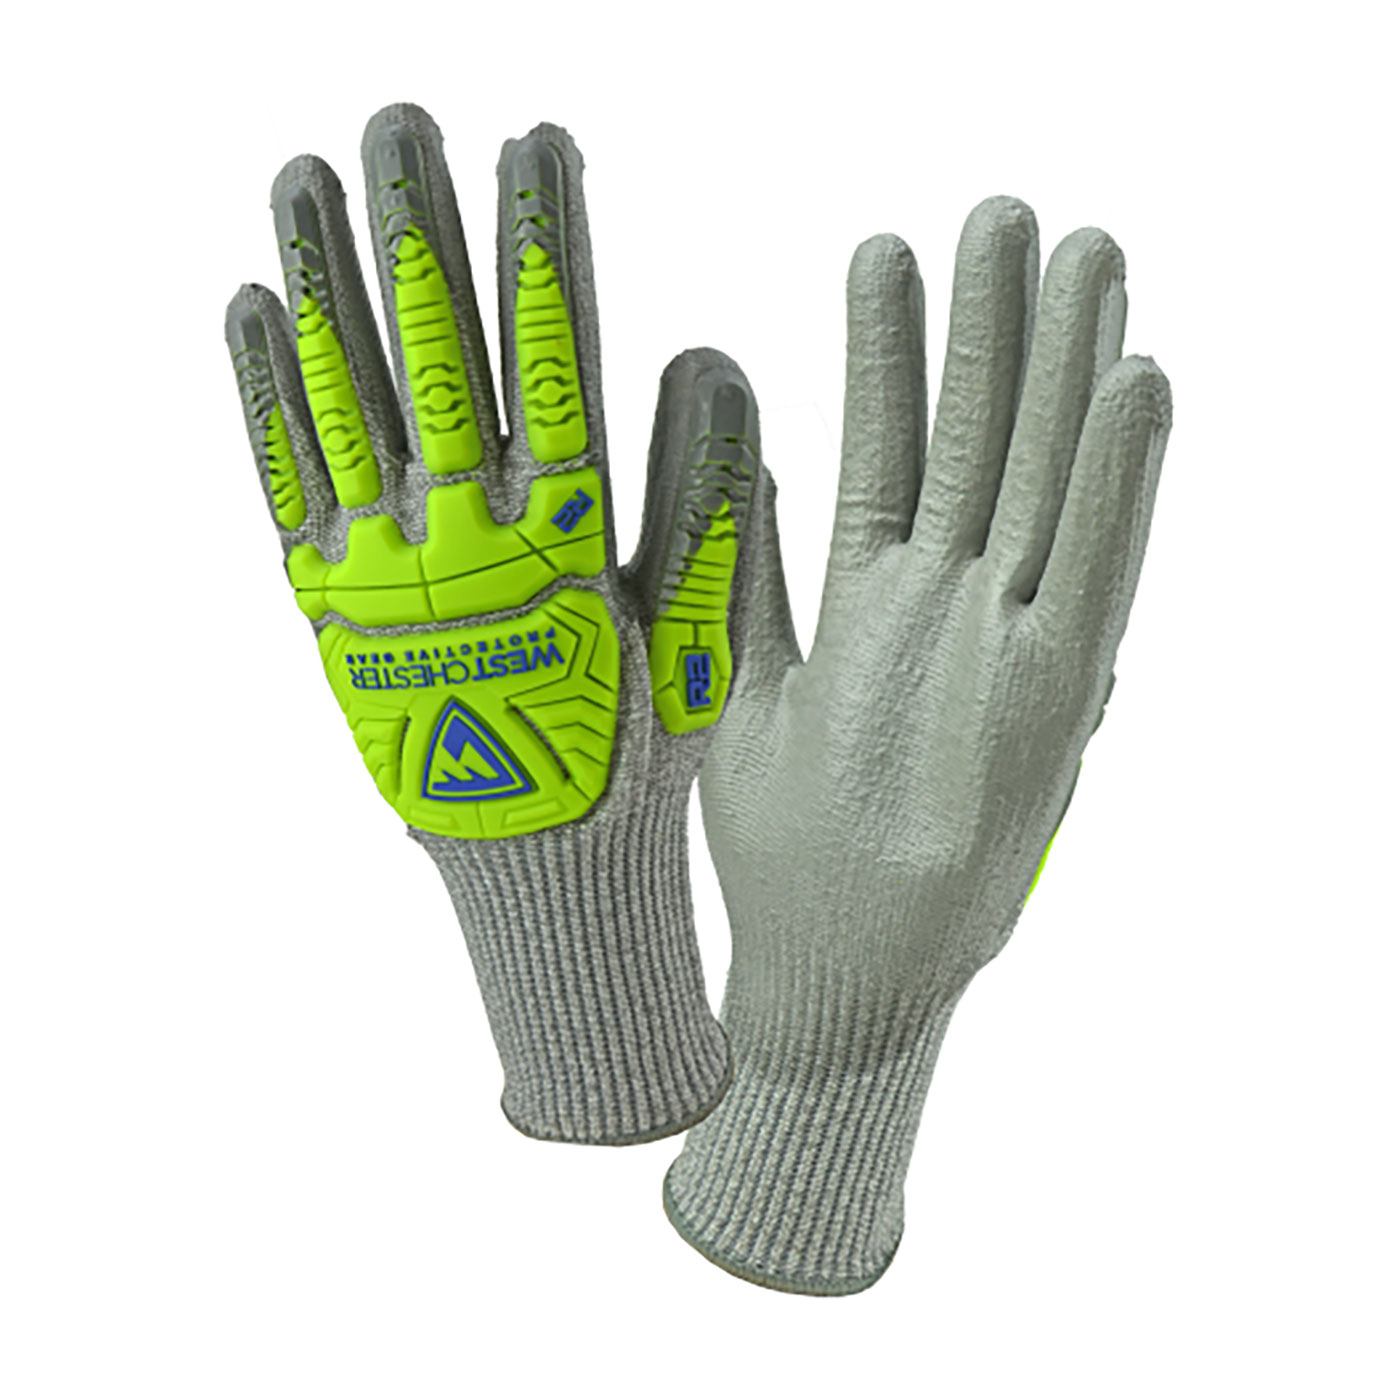 West Chester 710HGUBHVG L 710HGUBHVG R2™ Seamless Knit HPPE Blended Cut-Resistant Gloves, Large, HPPE, Gray, Rib Knit Cuff